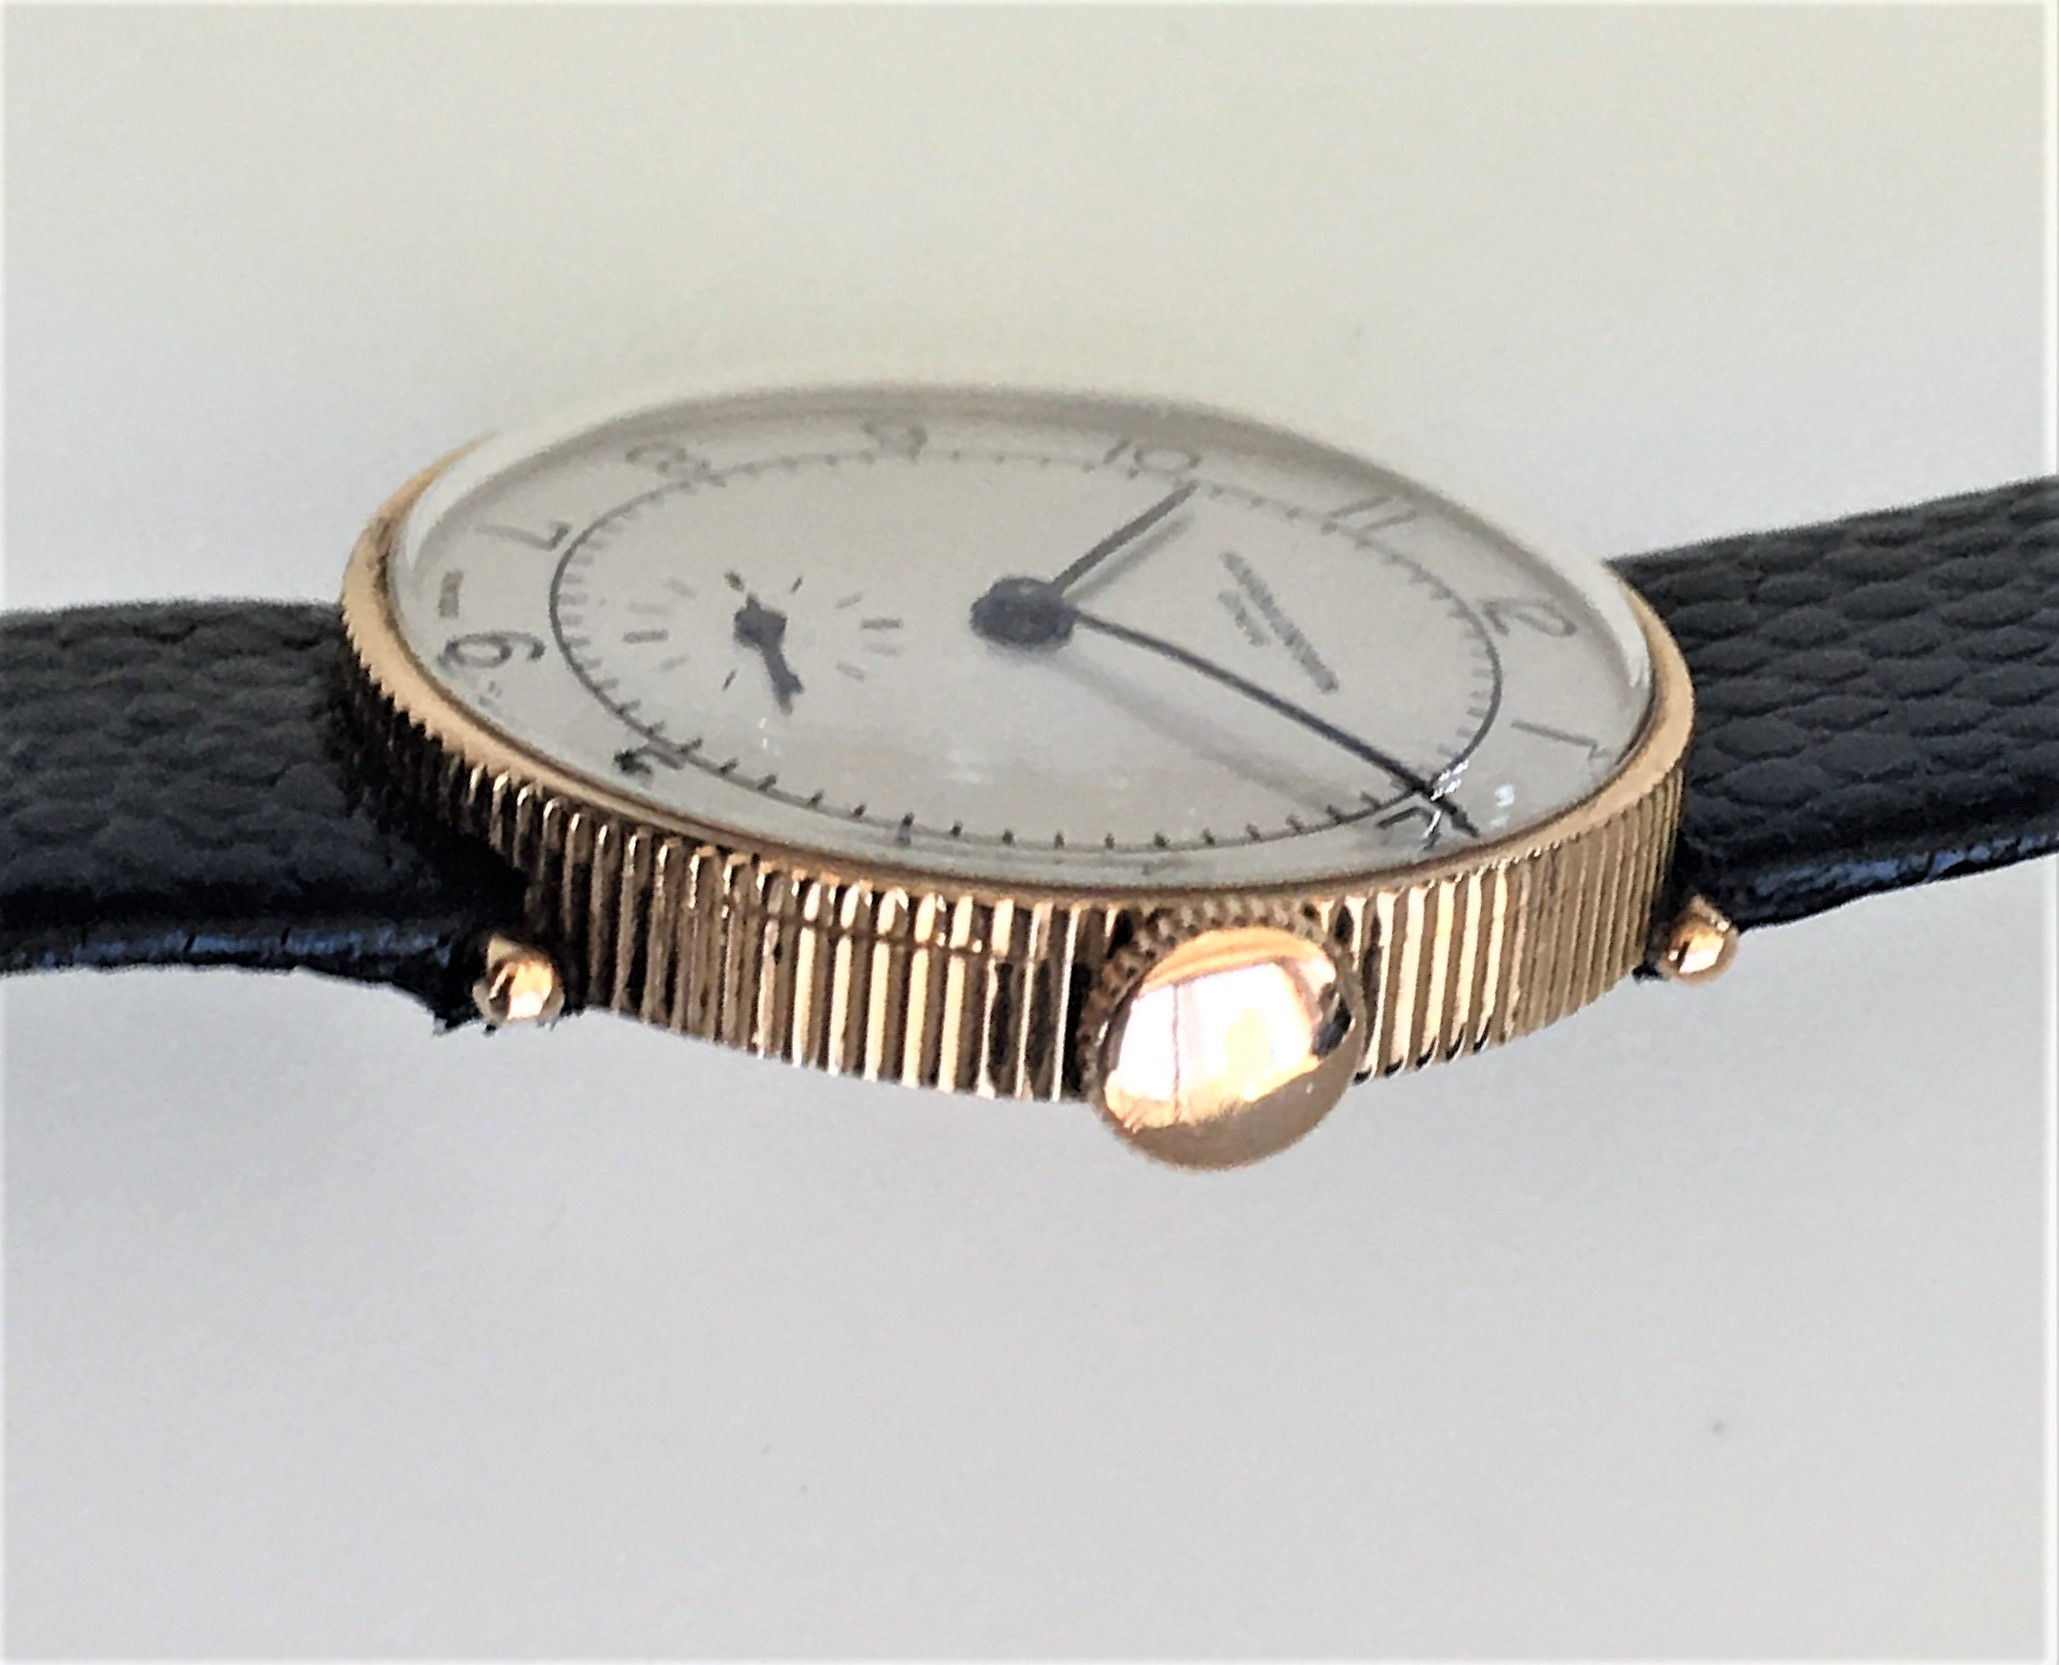 vacheron & constantin geneve . Tampa jewelry store watch repair